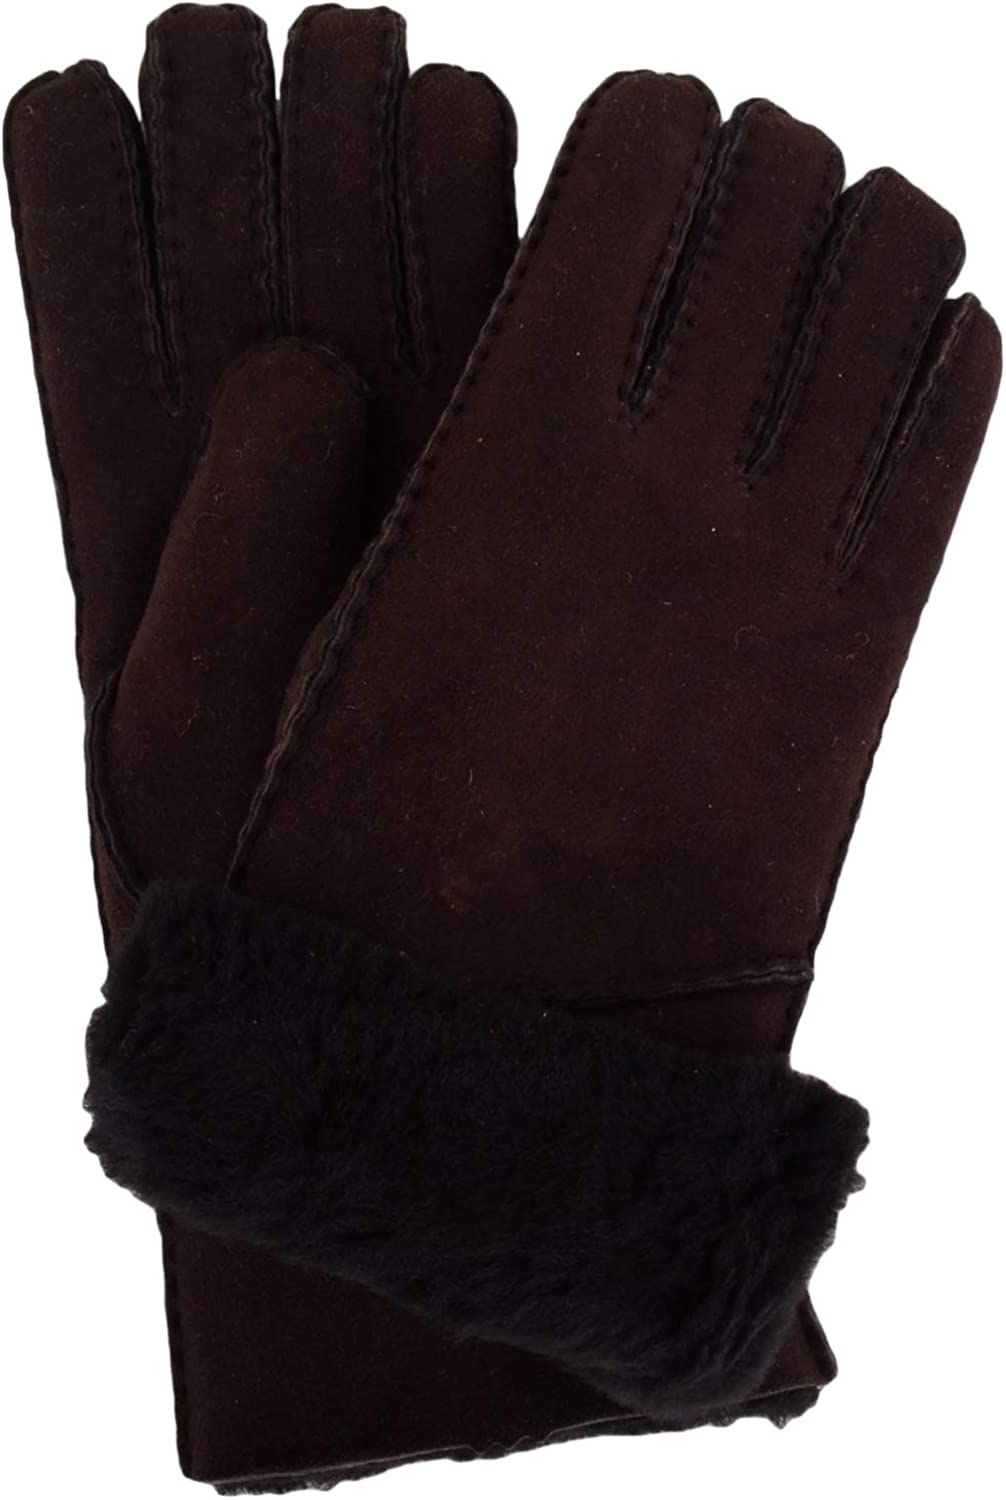 SNUGRUGS Vicky, Sheepskin Glove with Fold Back Cuff Guantes para Mujer